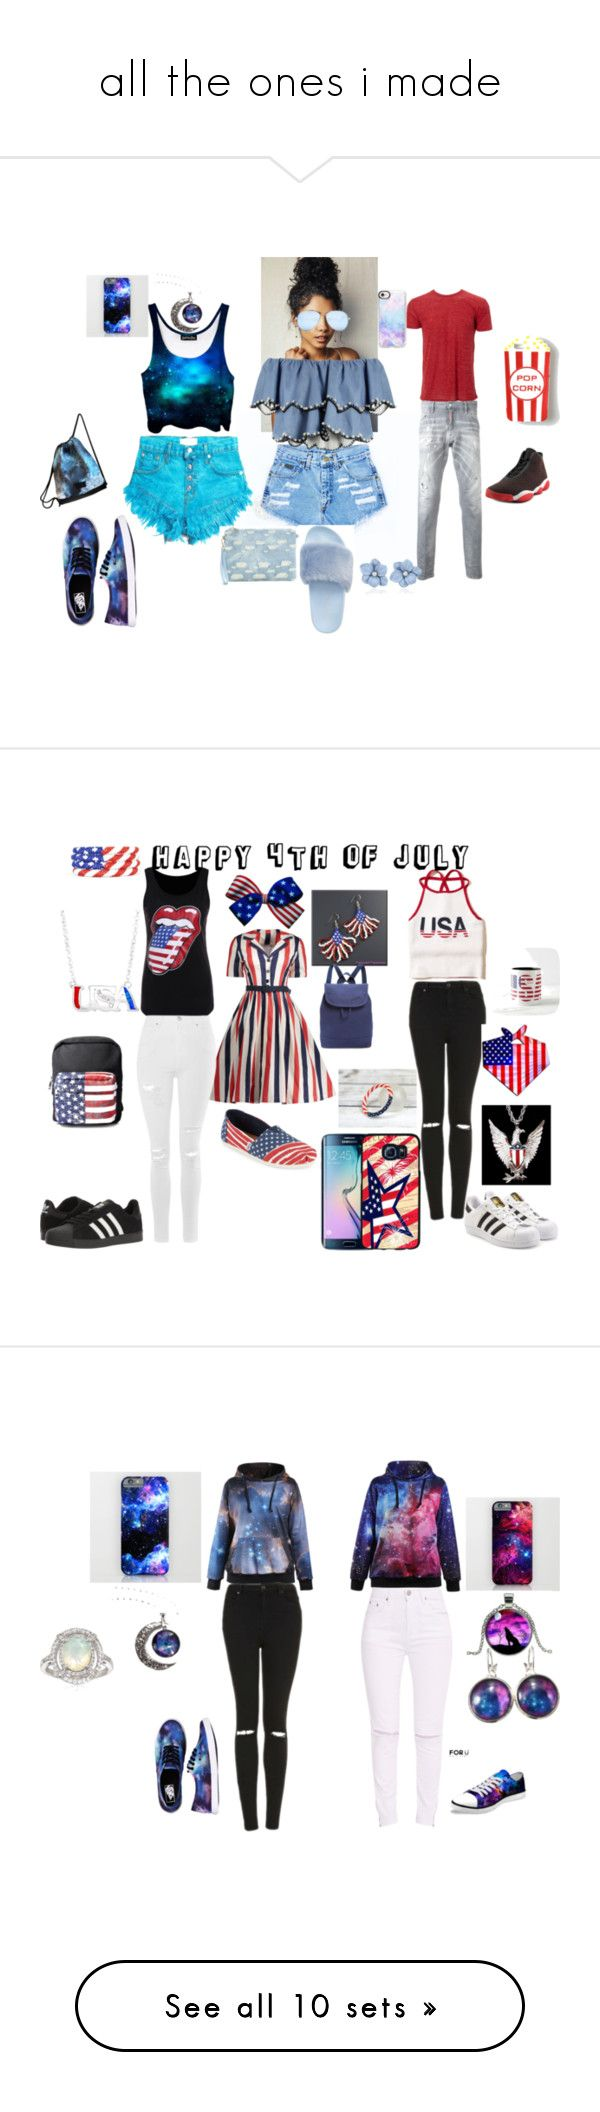 """""""all the ones i made"""" by jellybean14-1 ❤ liked on Polyvore featuring Simplex Apparel, Dsquared2, Jordan Brand, Steve Madden, Vans, Casetify, HUISHAN ZHANG, GUESS, Hollister Co. and Topshop"""